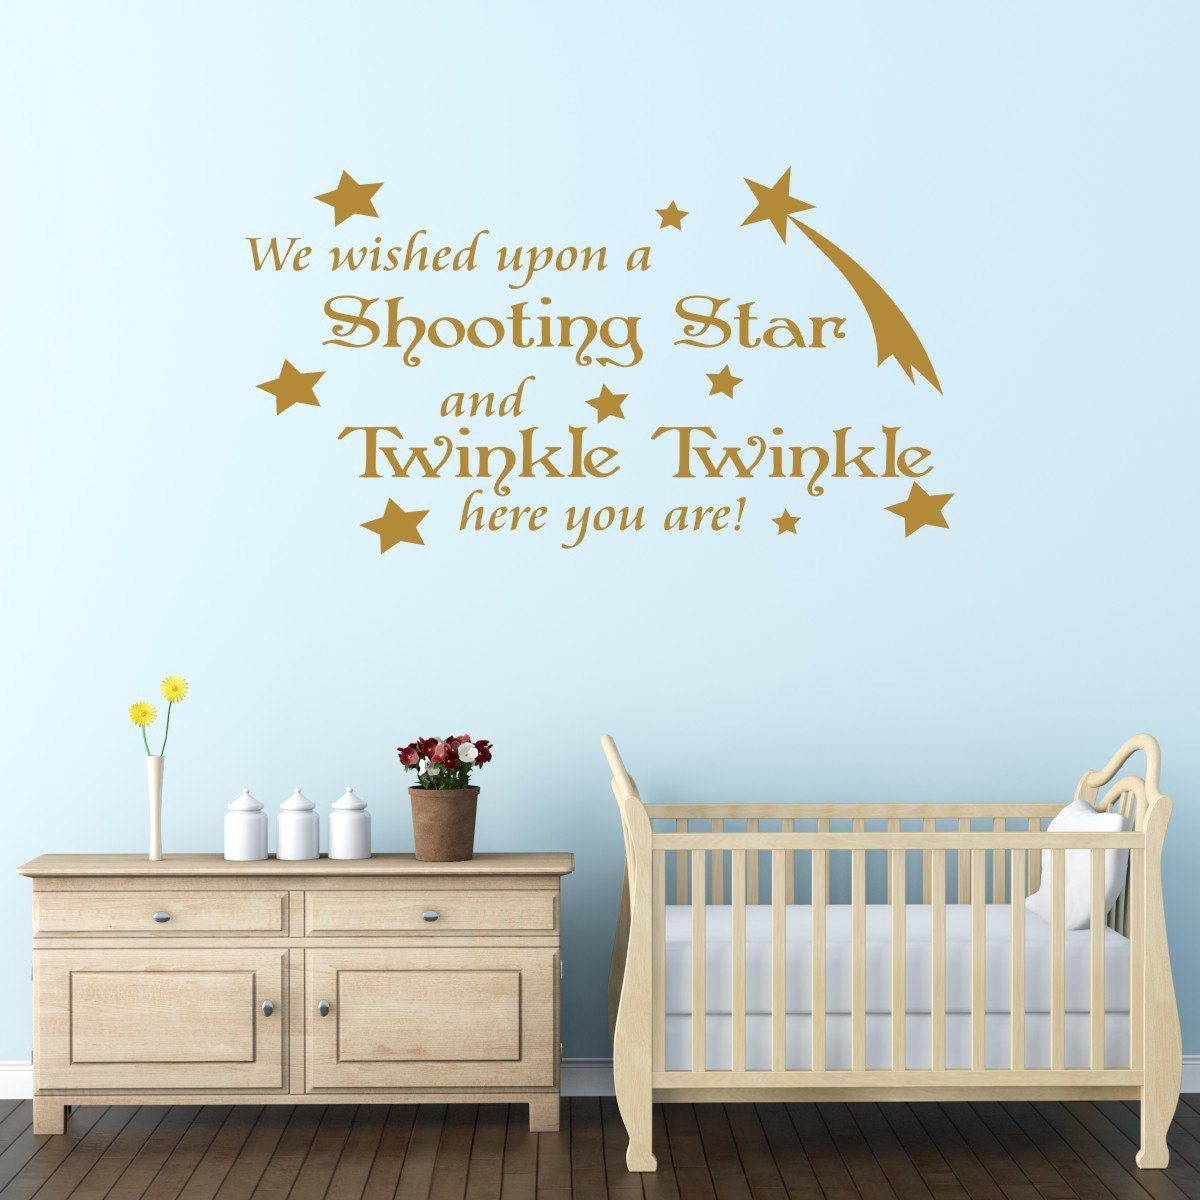 We Wished Upon A Shooting Star Nursery Wall Sticker Quote - Wall decals beach quotes